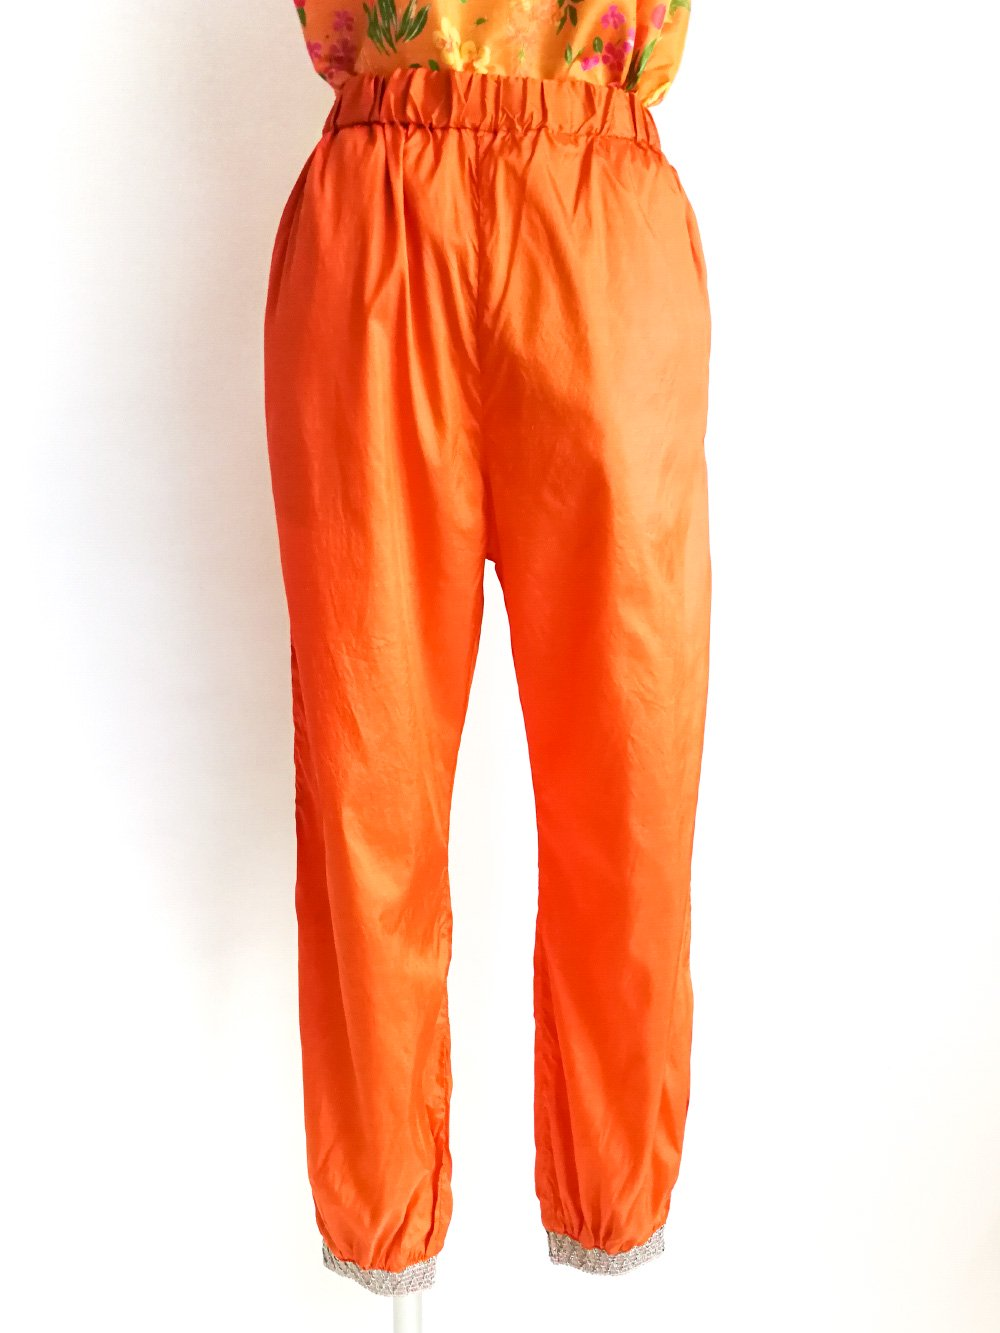 Balloon Pants / orange